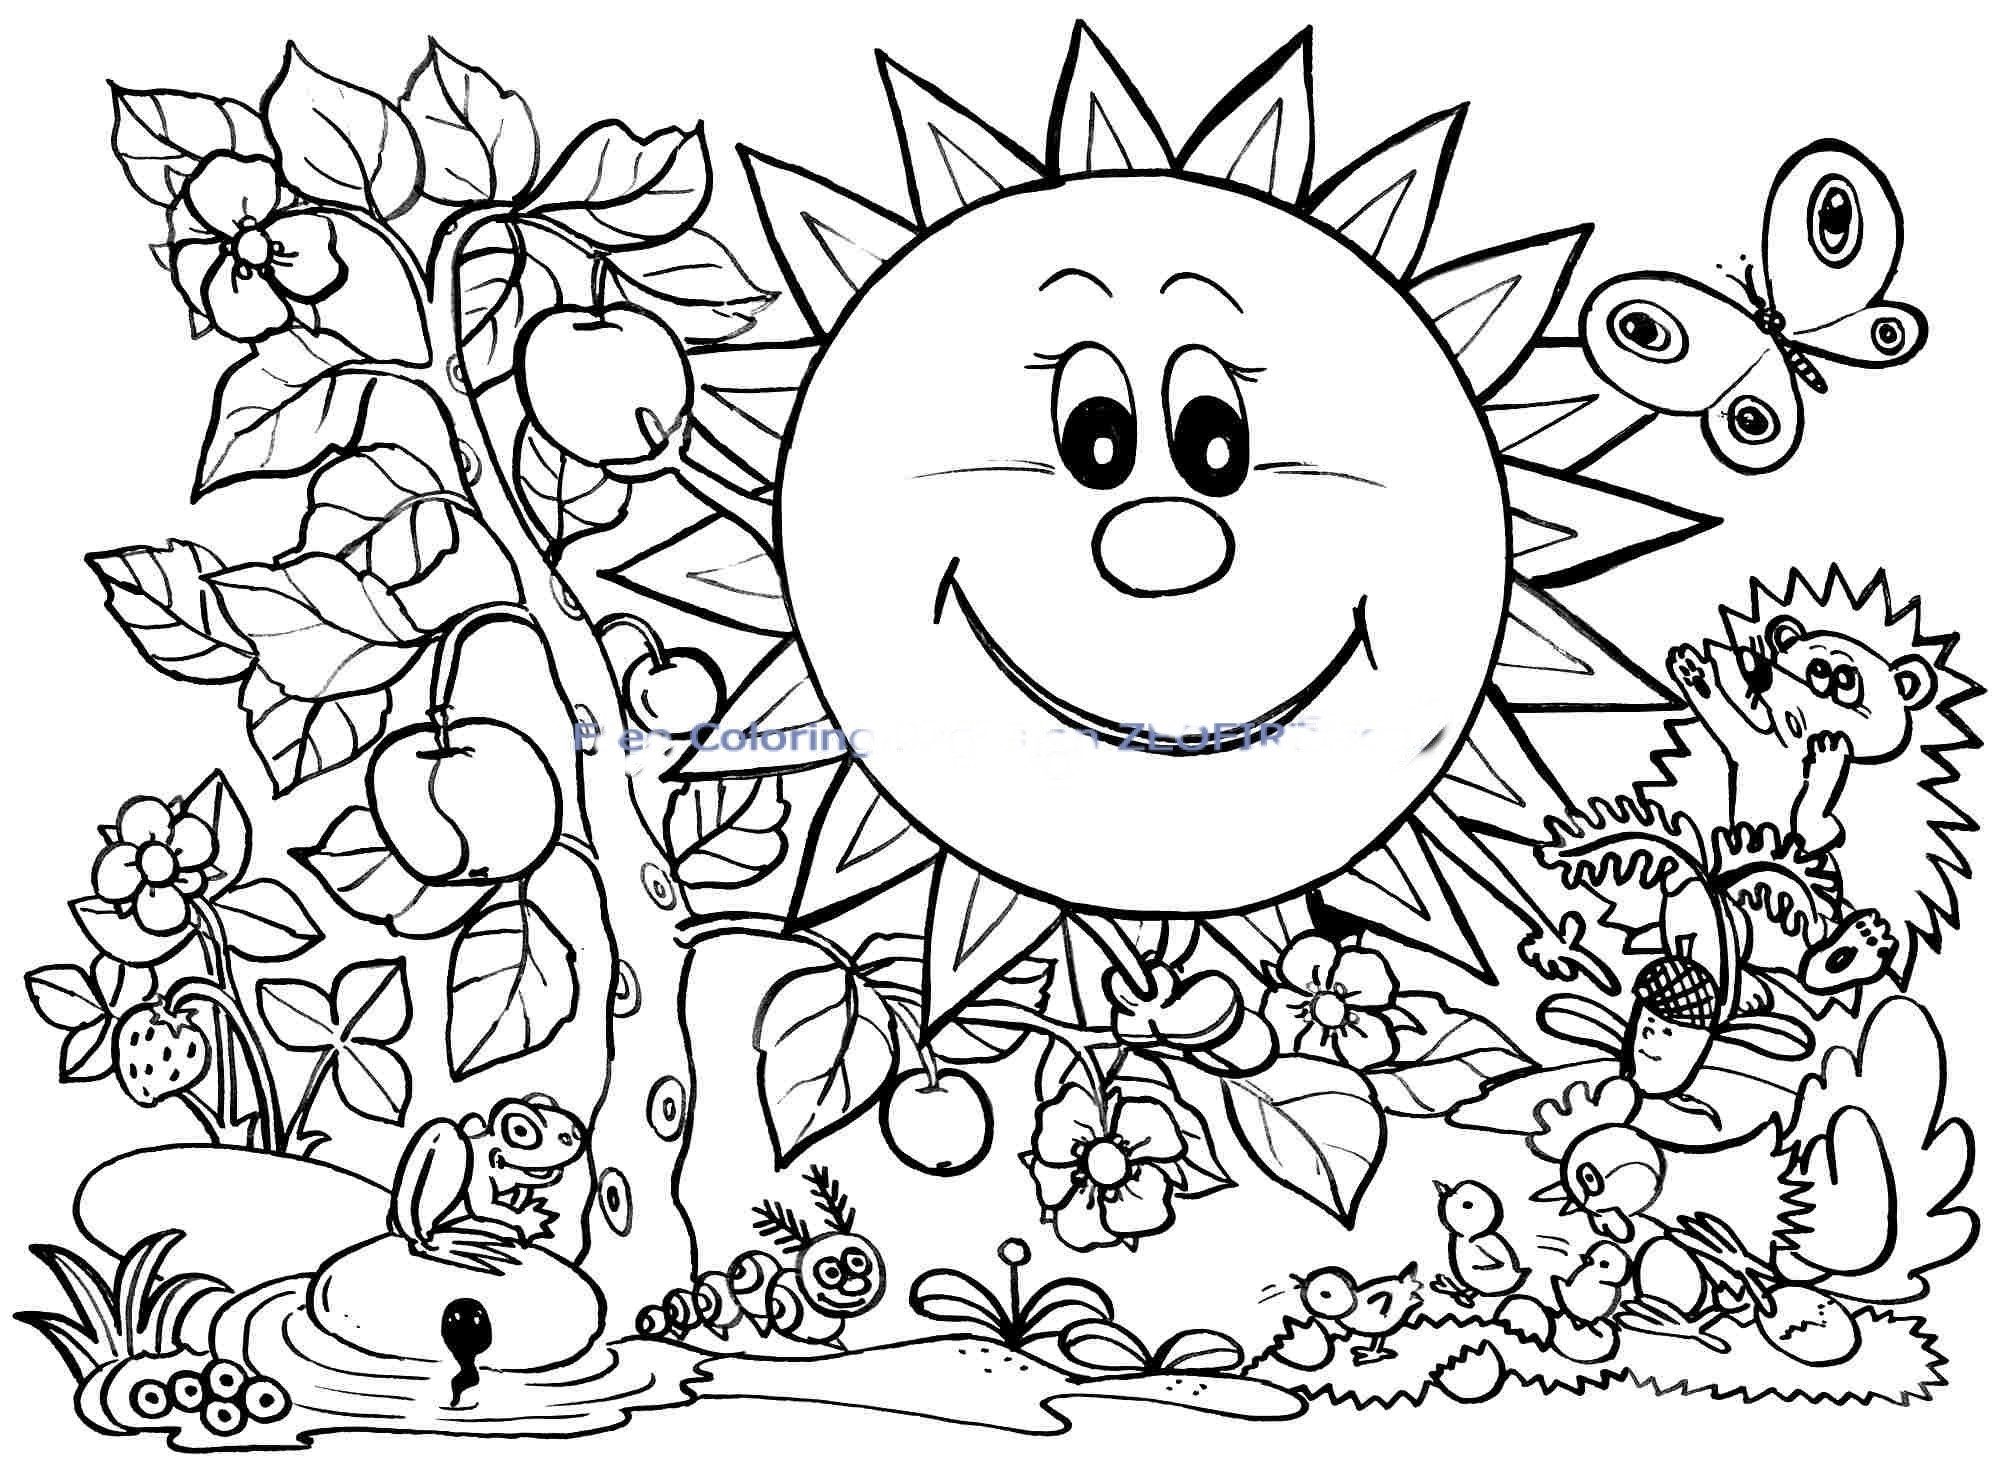 2000x1470 Insider Springtime Pictures To Color Spring Coloring Pages Sunny